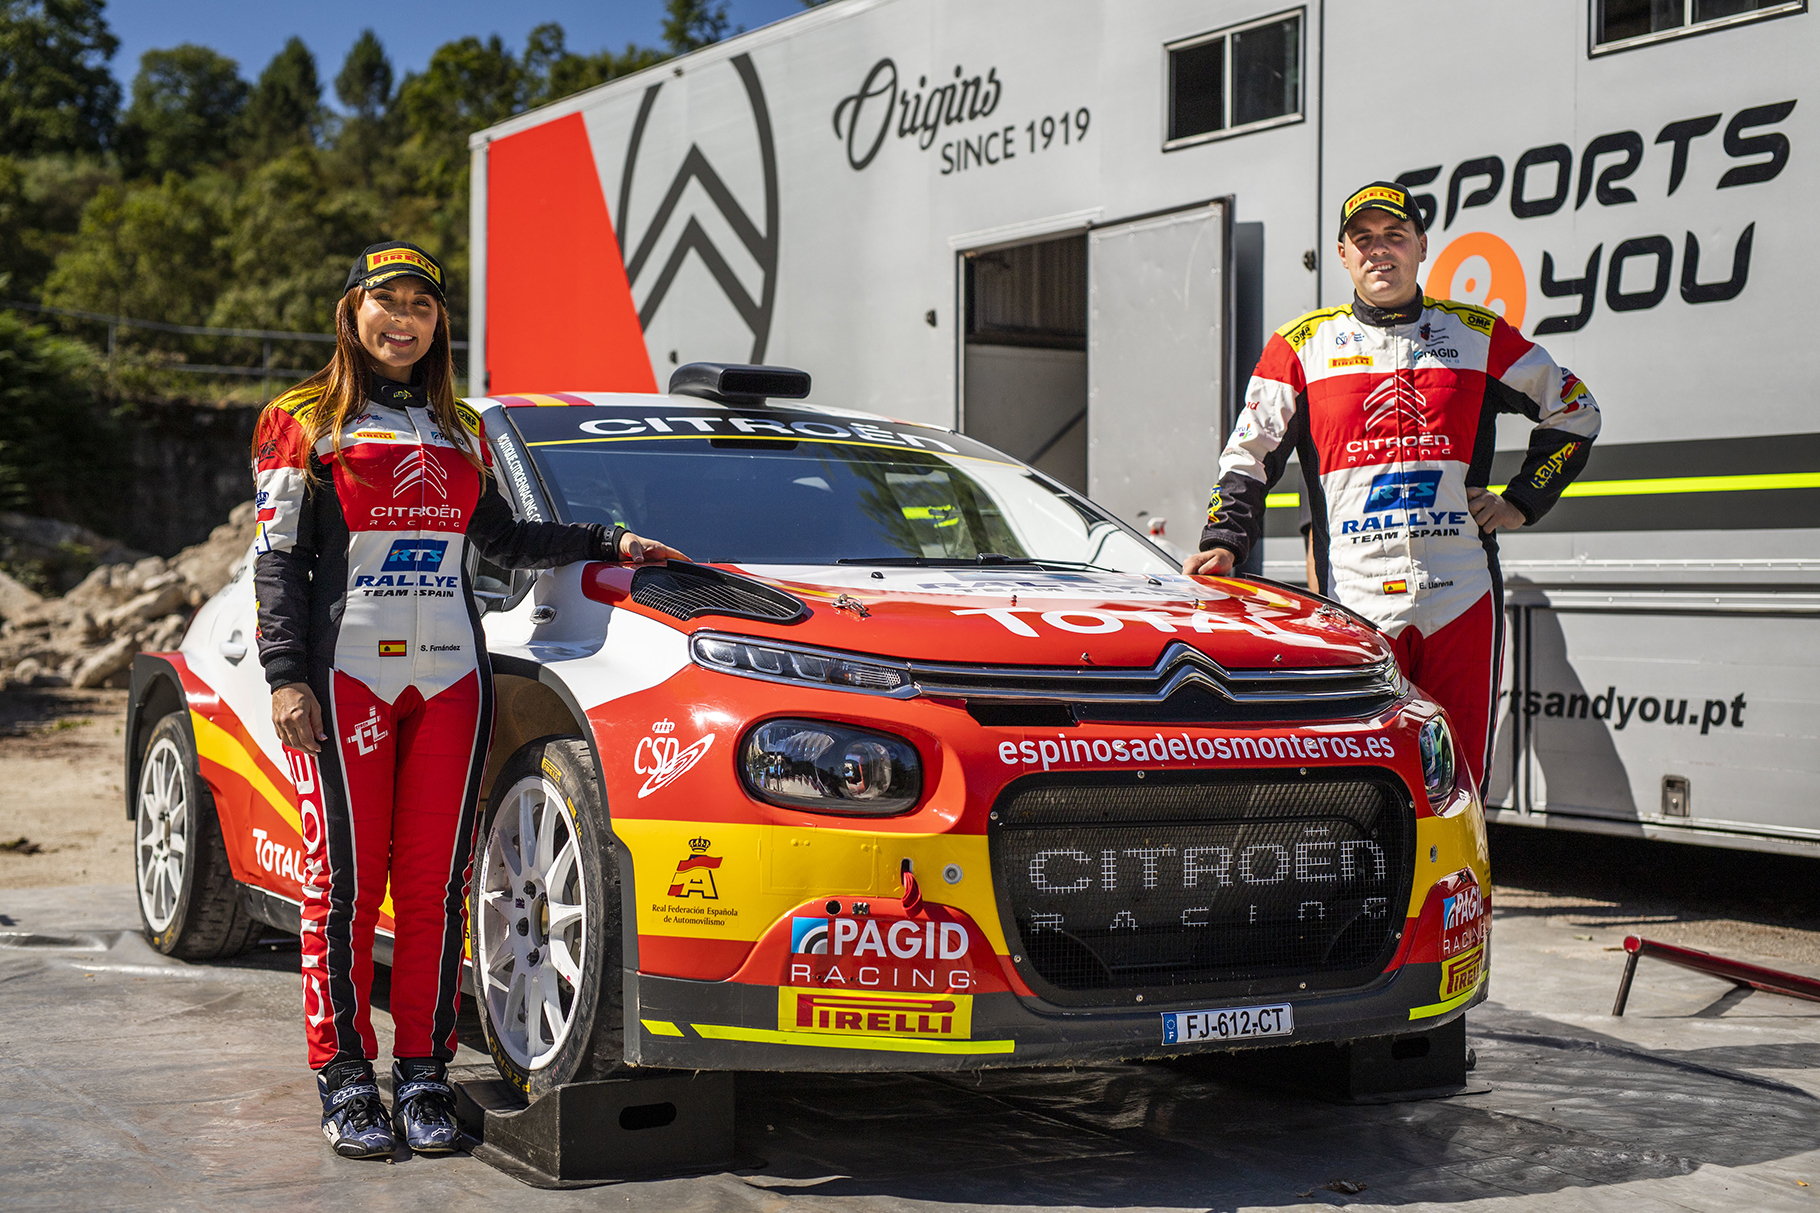 El Rallye Team Spain debuta en el Europeo ERC1 Junior.